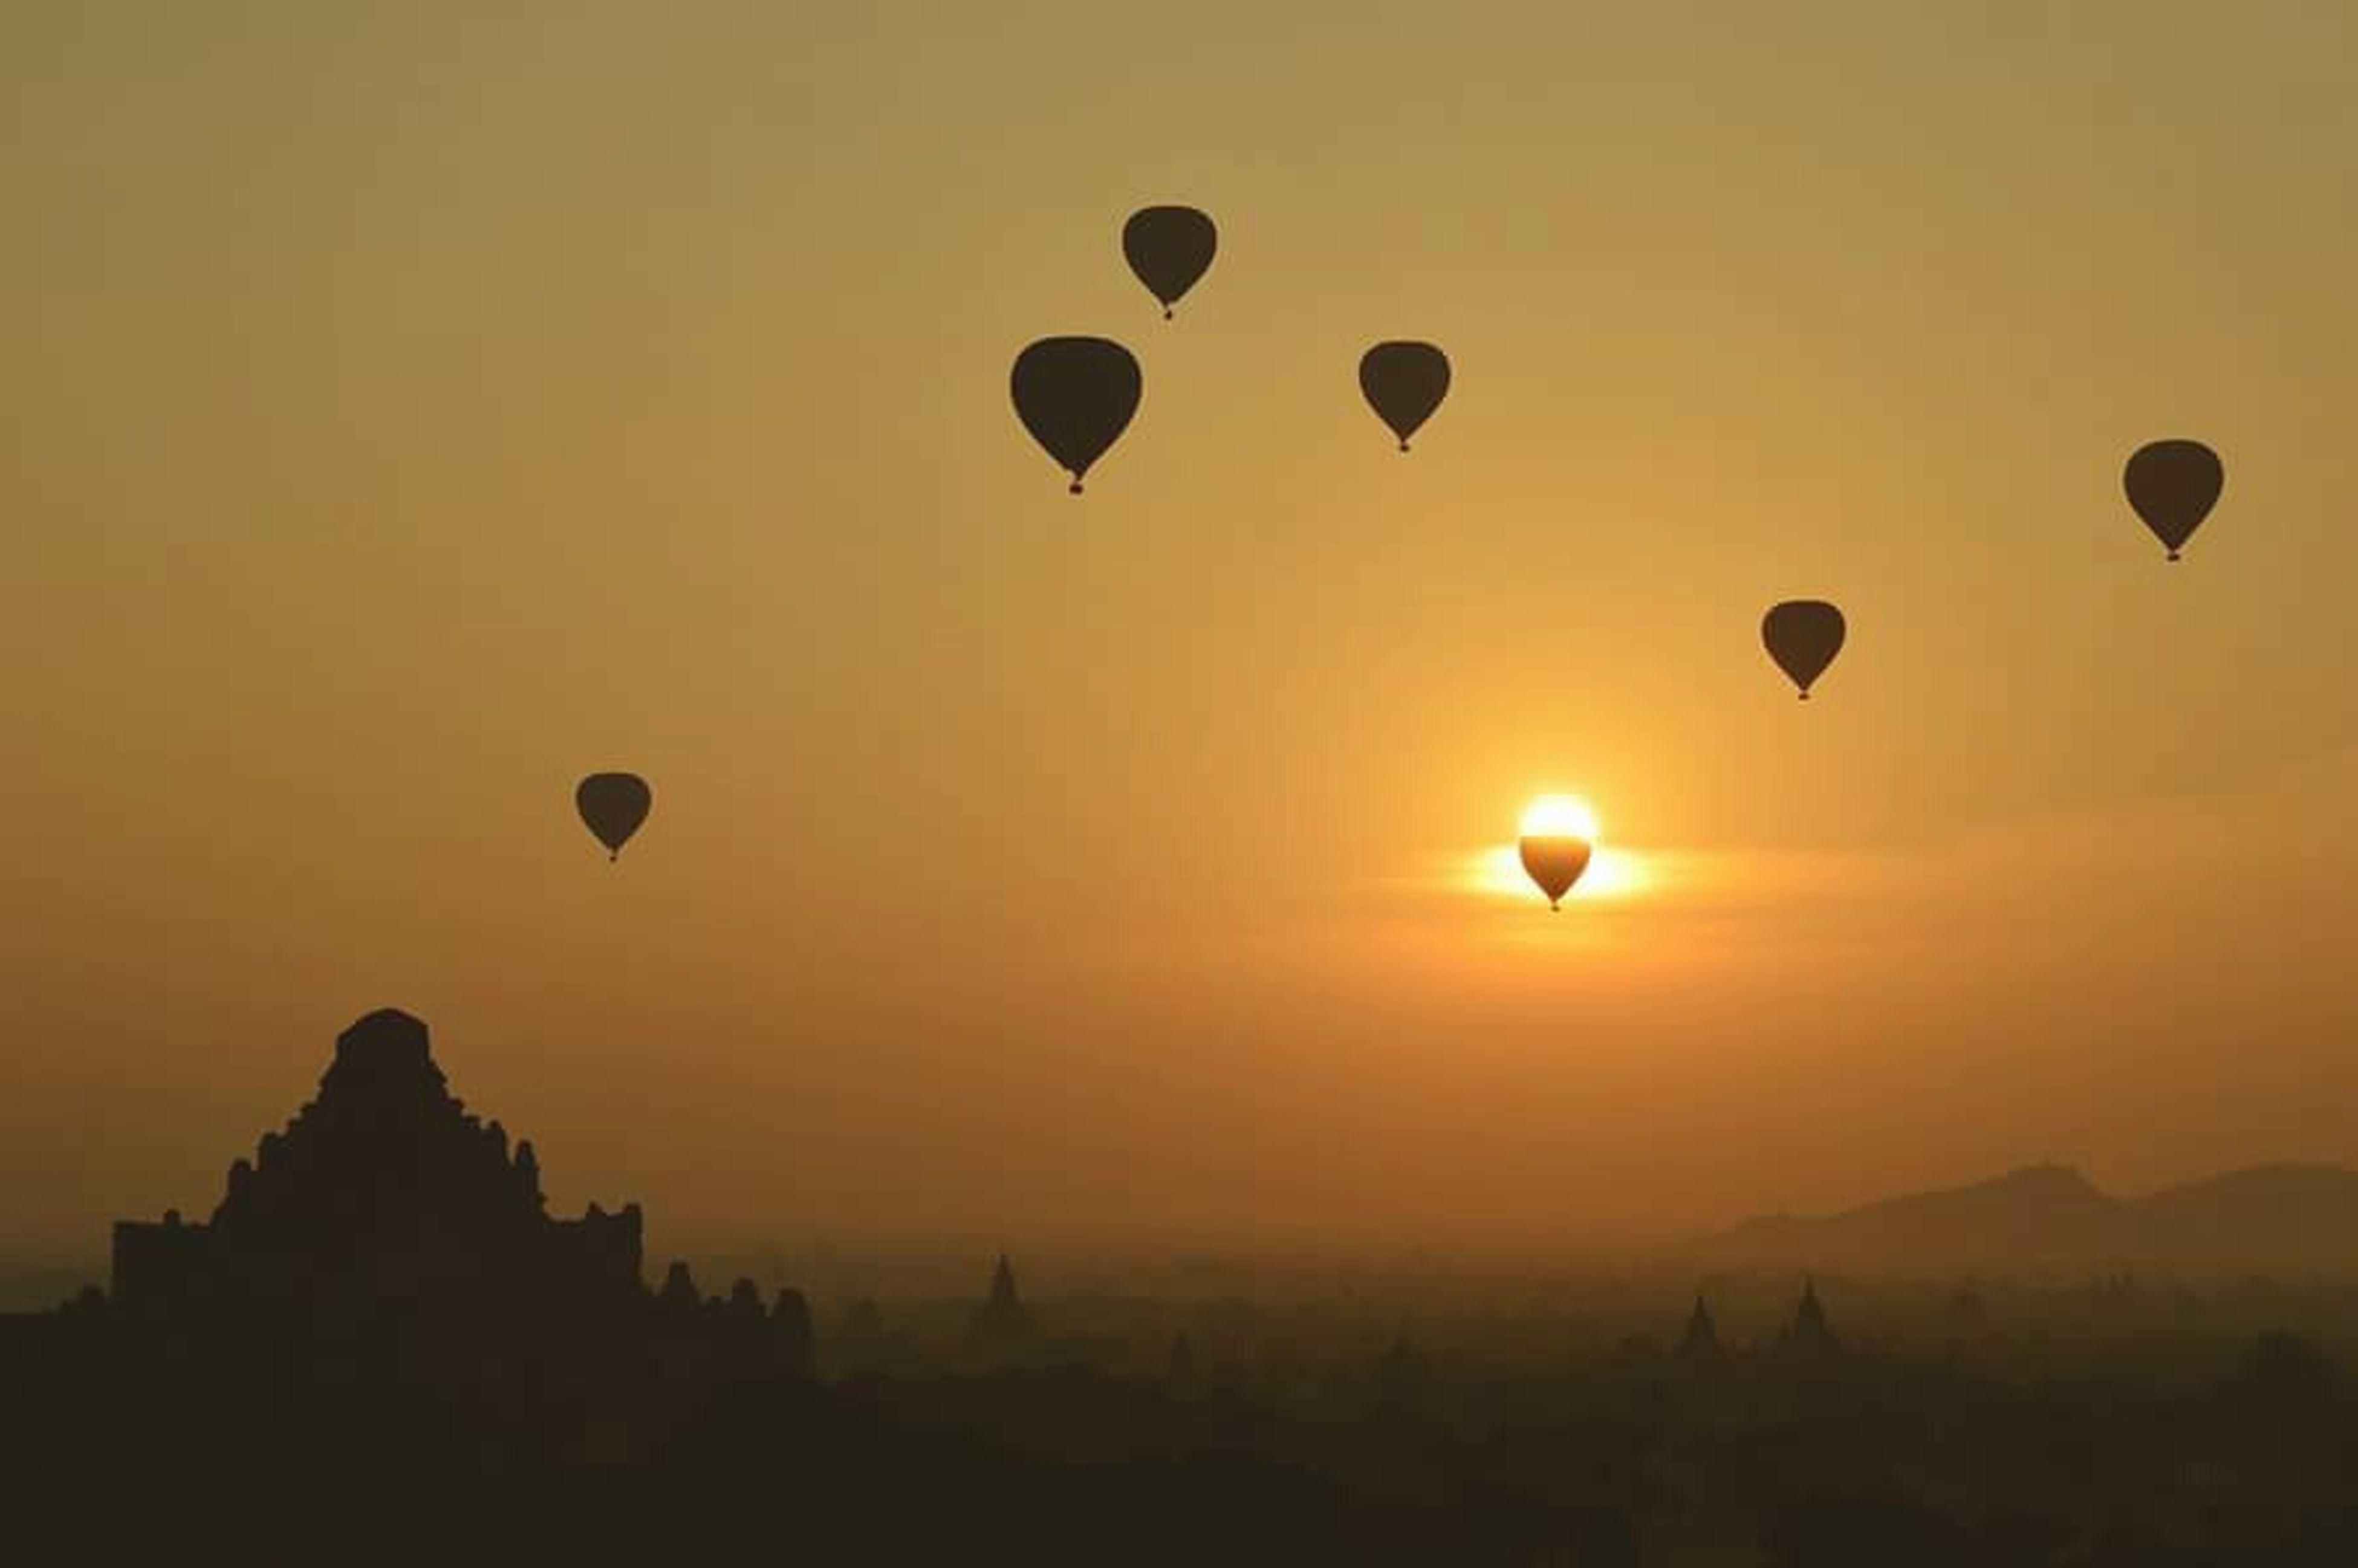 sunset, hot air balloon, flying, scenics, sun, orange color, mid-air, sky, tranquil scene, beauty in nature, tranquility, silhouette, landscape, nature, idyllic, parachute, outdoors, copy space, travel, transportation